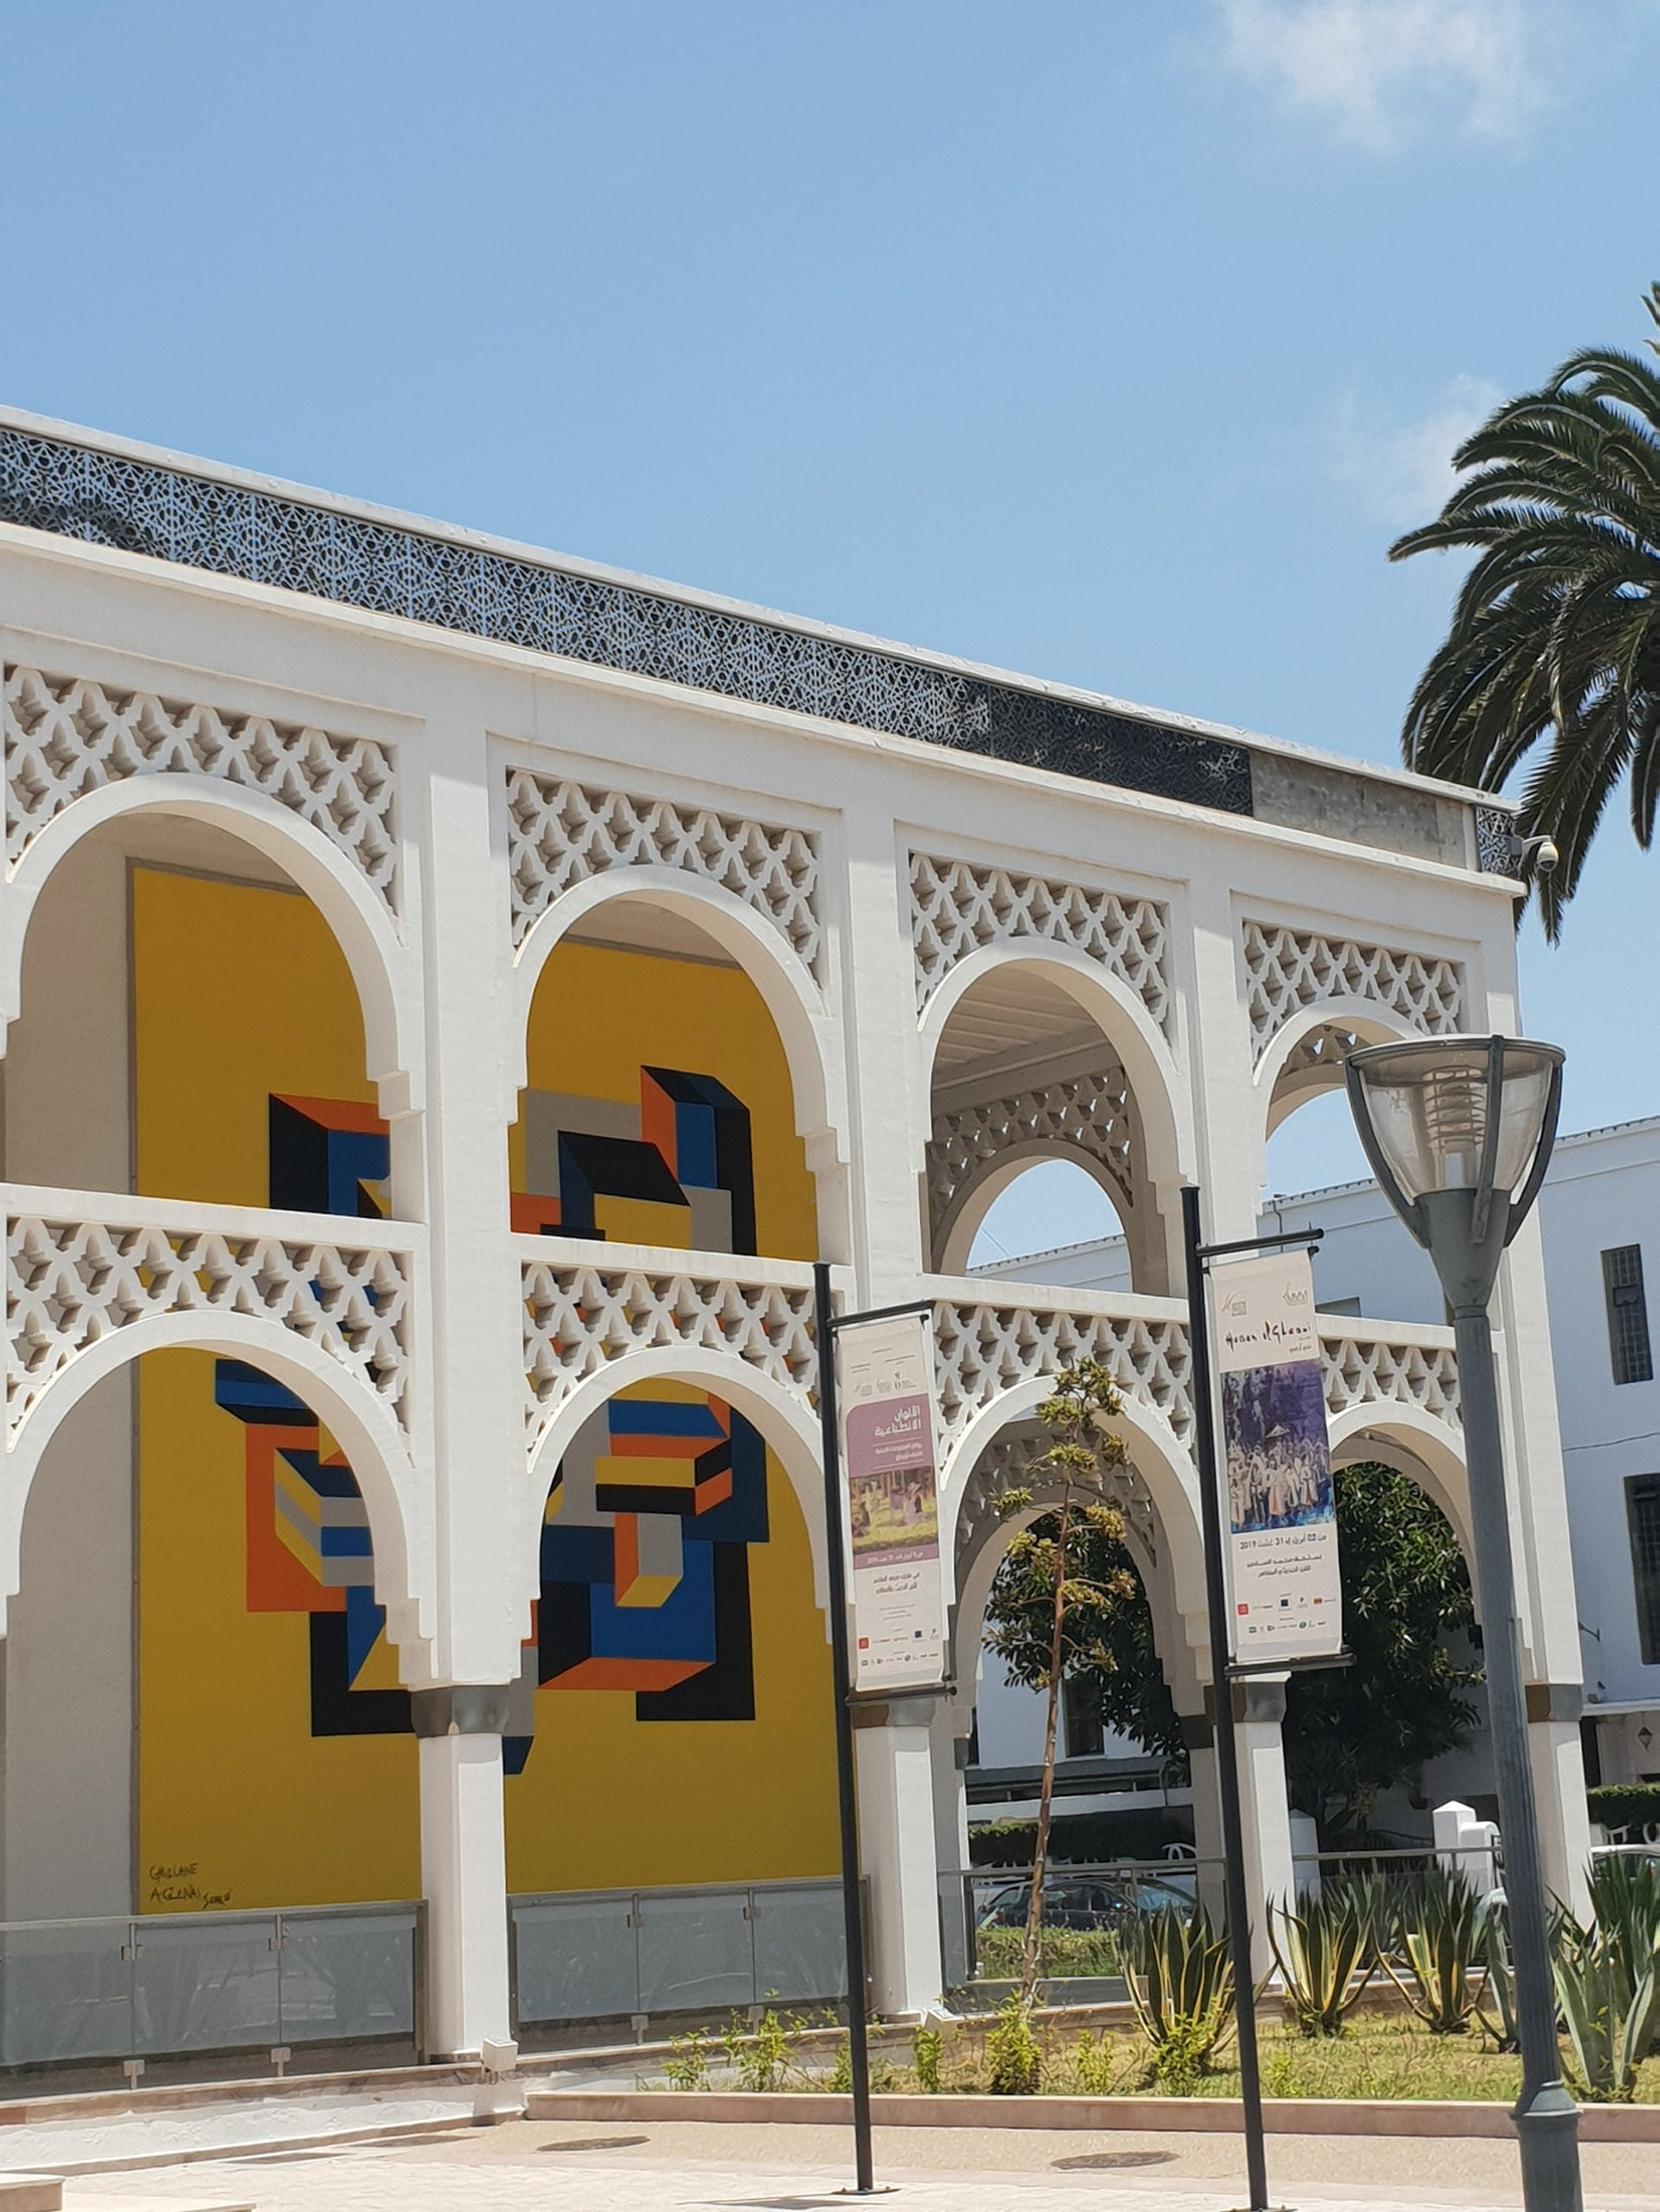 The Museum of Modern Art in Rabat.